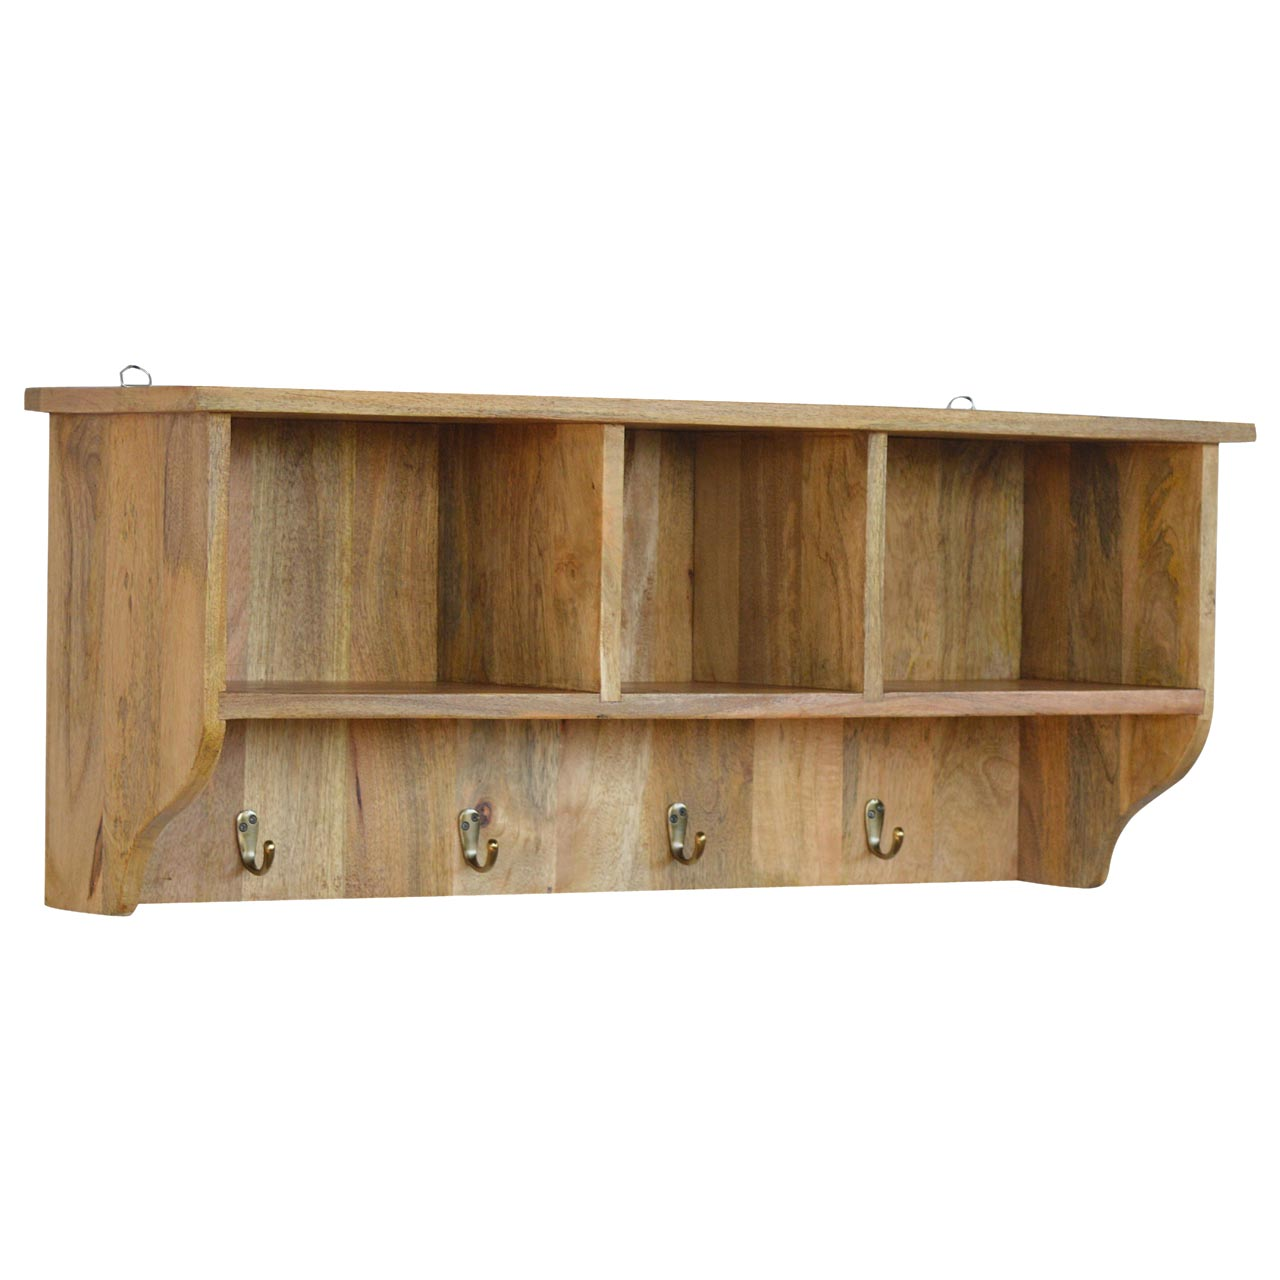 IN071 Solid Wood Wall Mounted Coat Rack